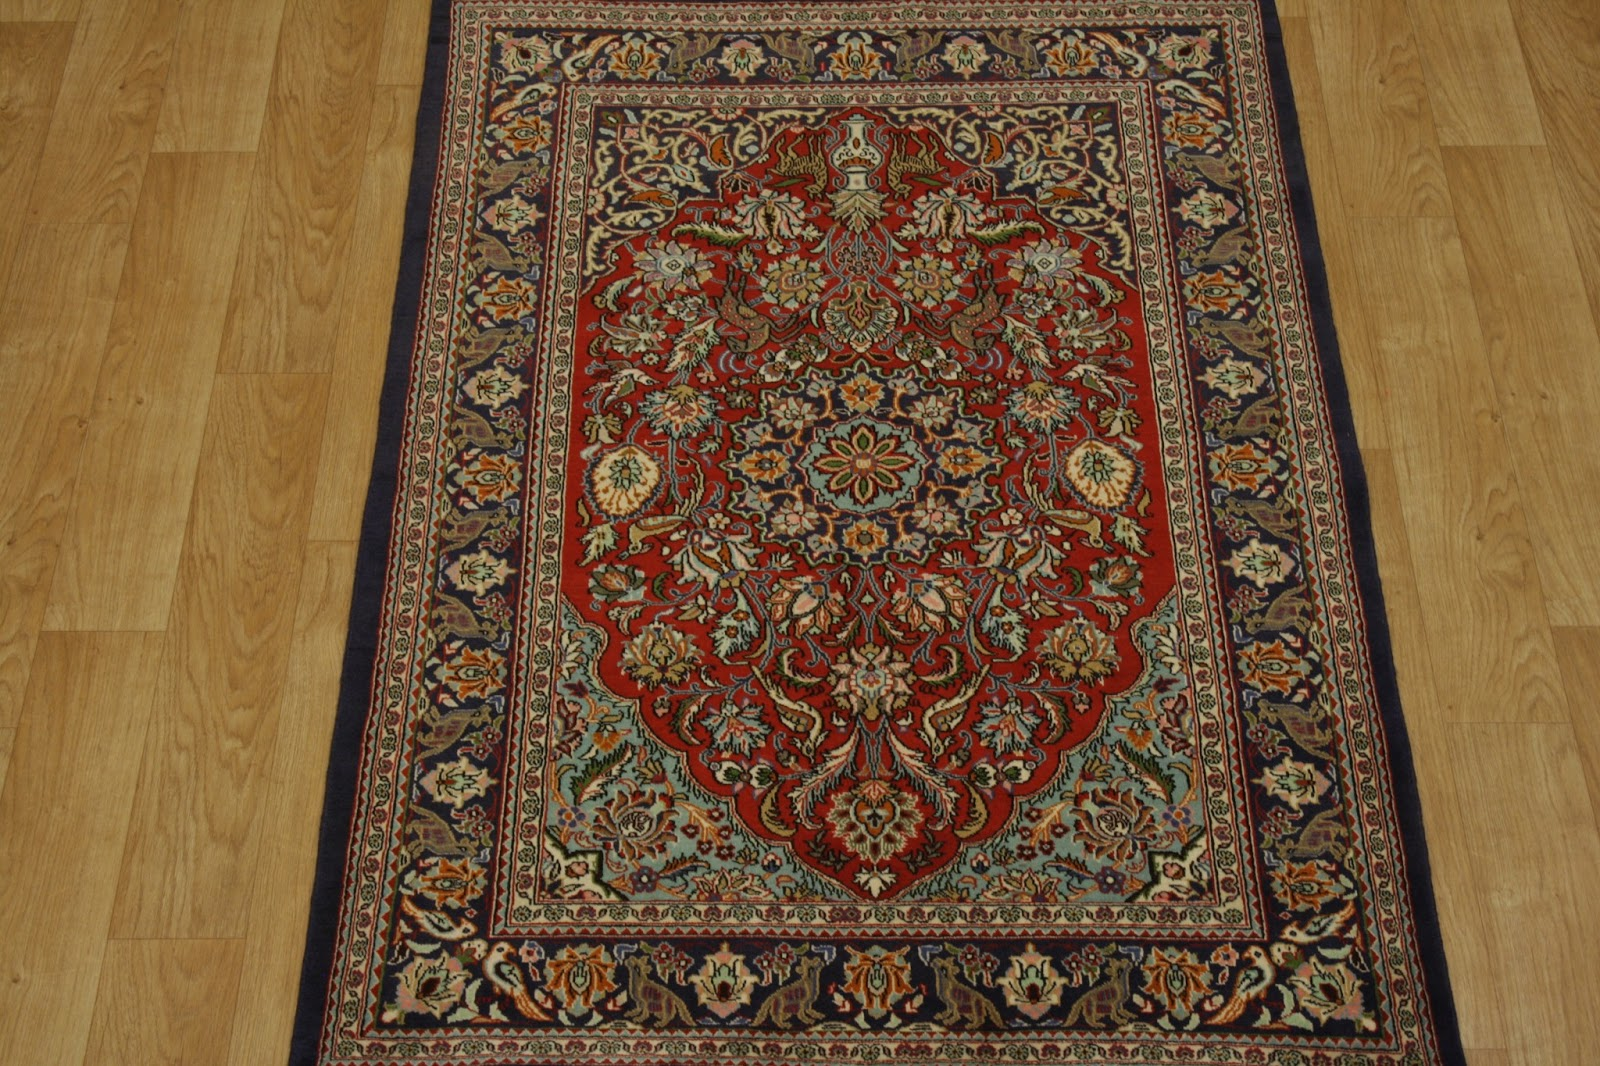 Uncategorized types of carpets and rugs for Types of carpets for home